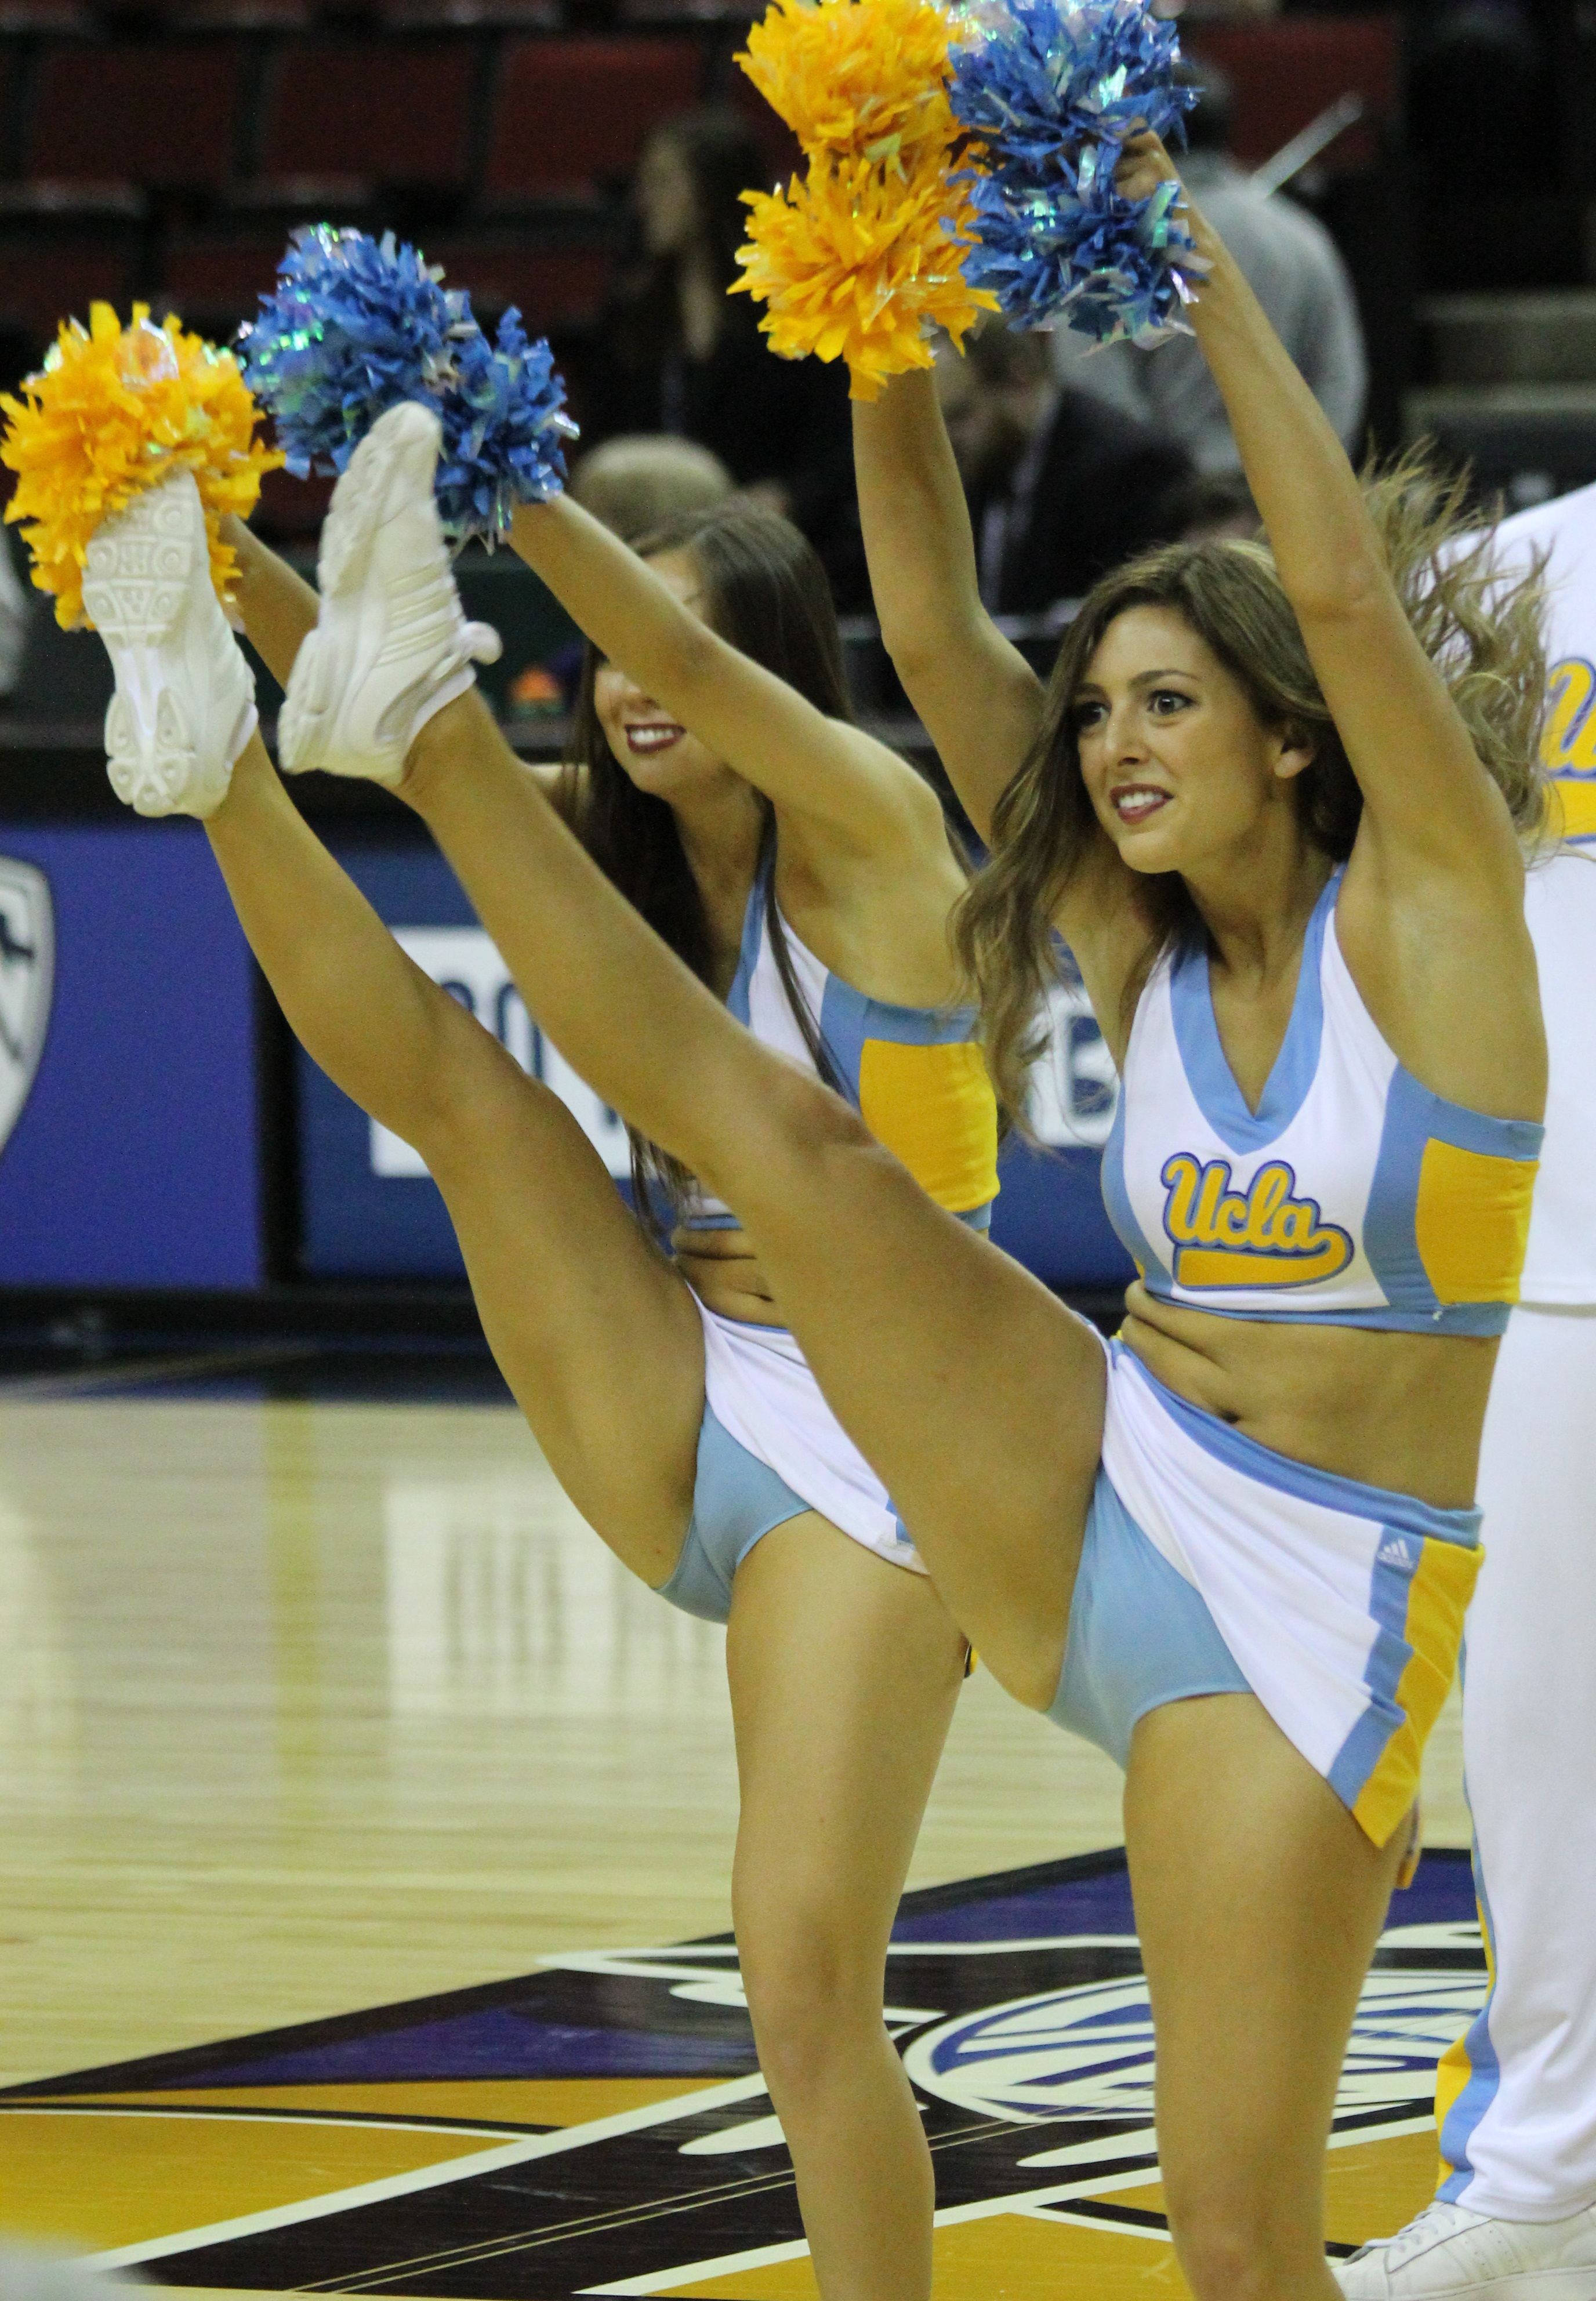 College cheerleader leg kicks pantyhose adult images